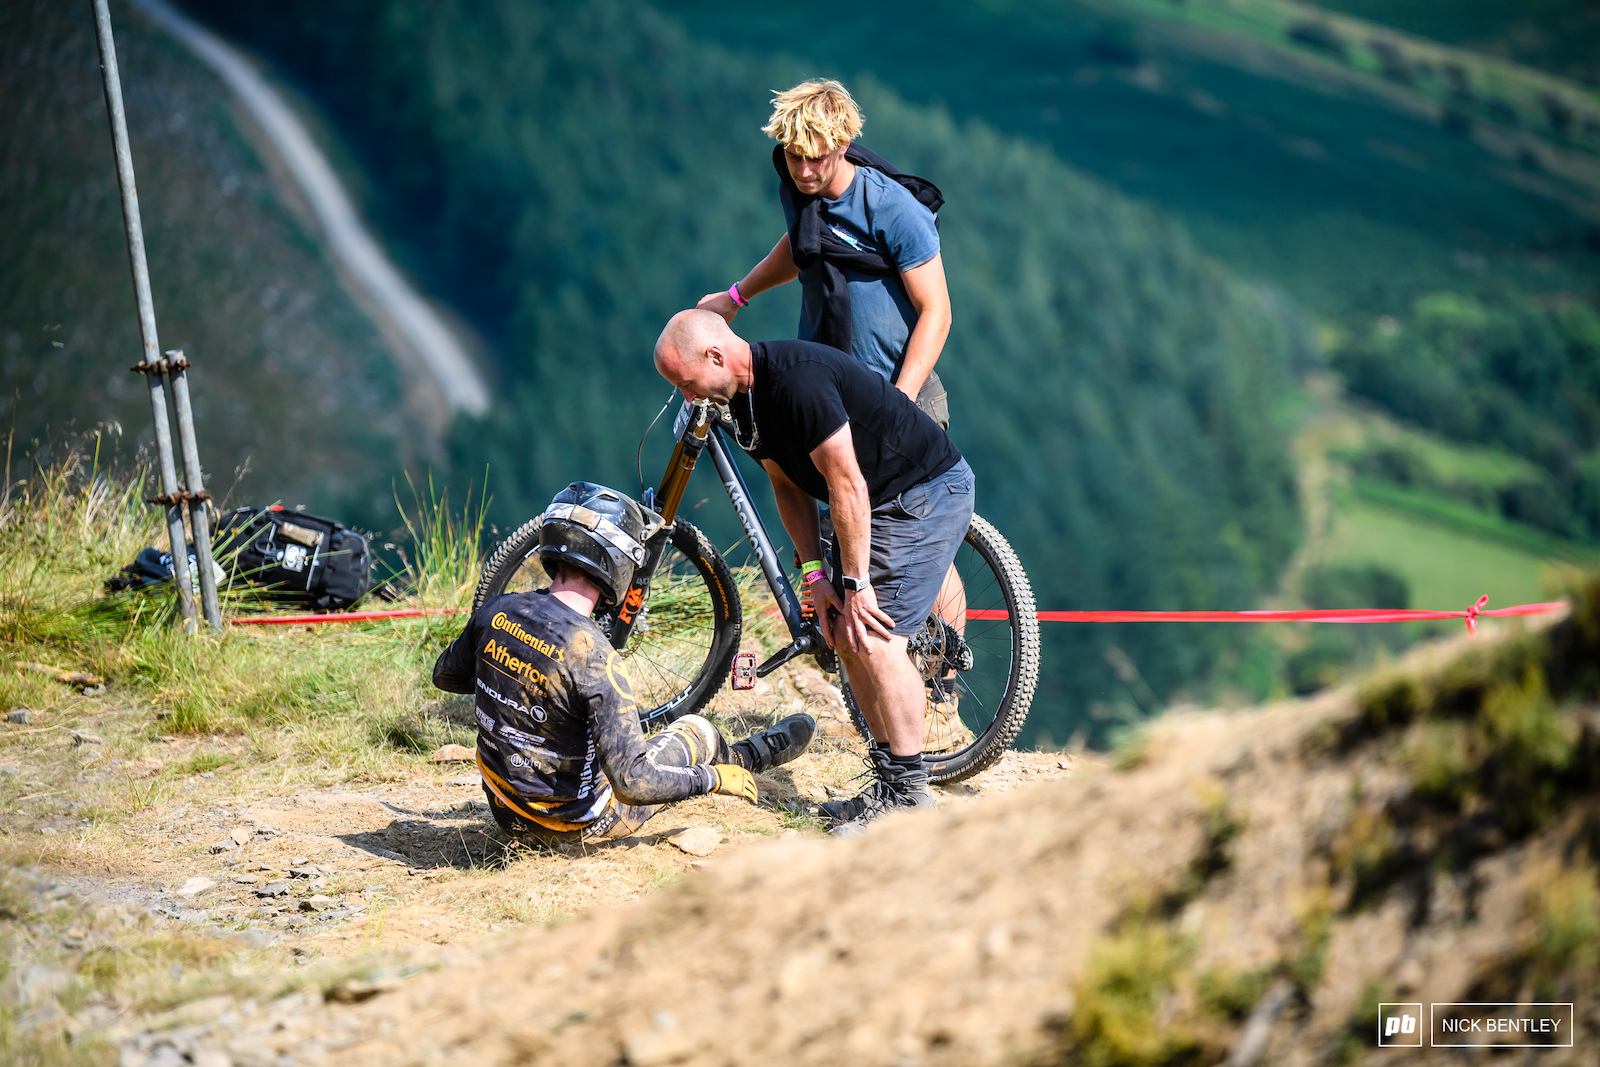 It was a massive crash for Charlie Hatton how ever he was up back on his feet with coasted down the track with the other riders. the Continental Athaton rider is clearly made of strong stuff.